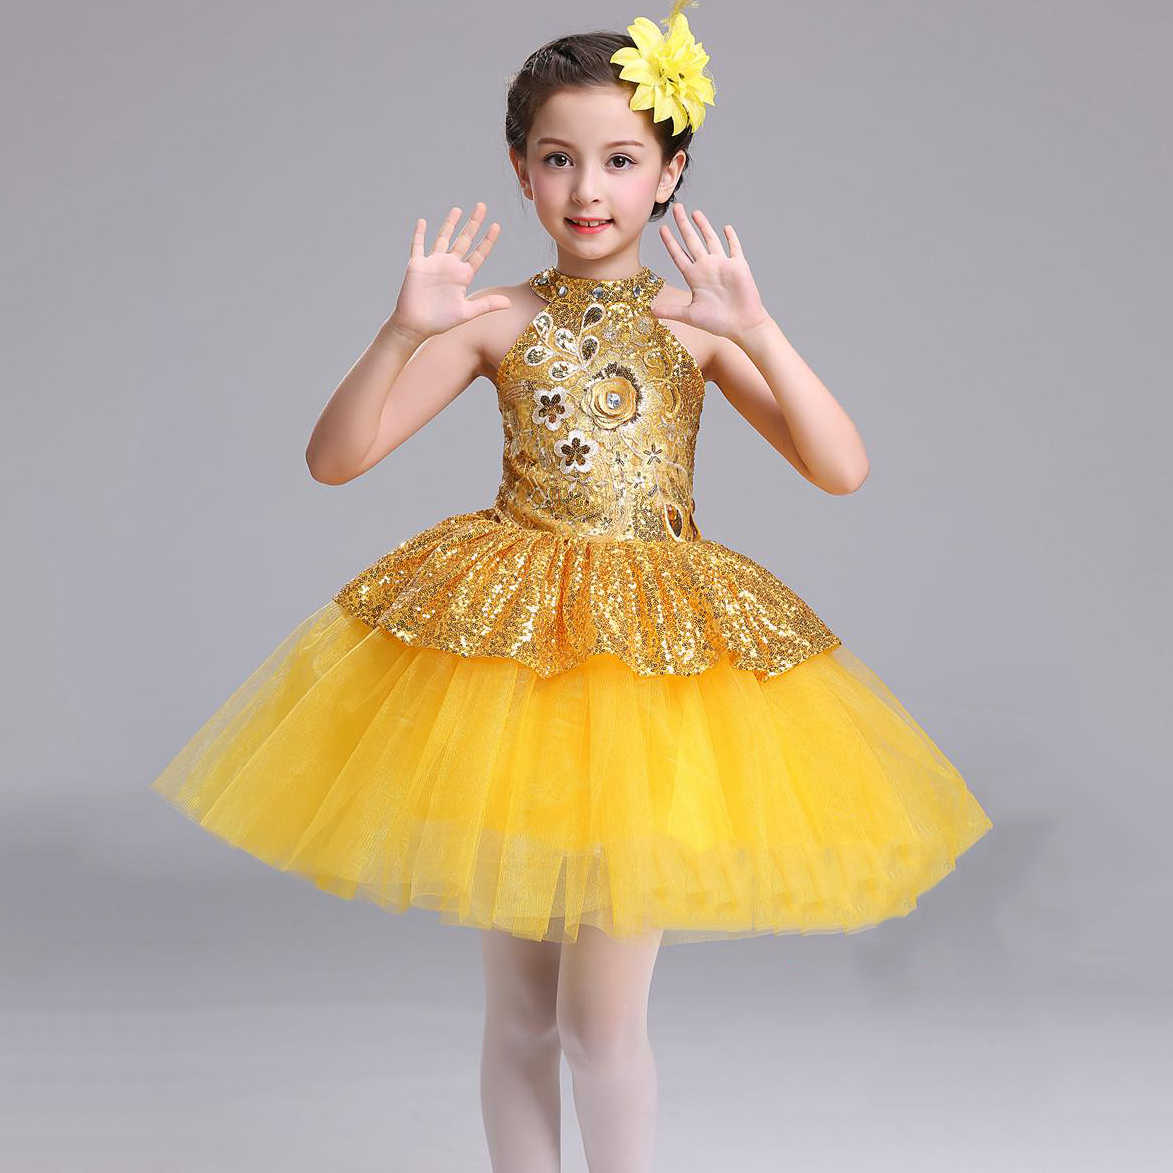 52f96cc72ab66 ... Children Fashion Flower Girl Tulle Dress Evening Short Frocks Design  Pageant Ball Gowns for Girls Easter ...